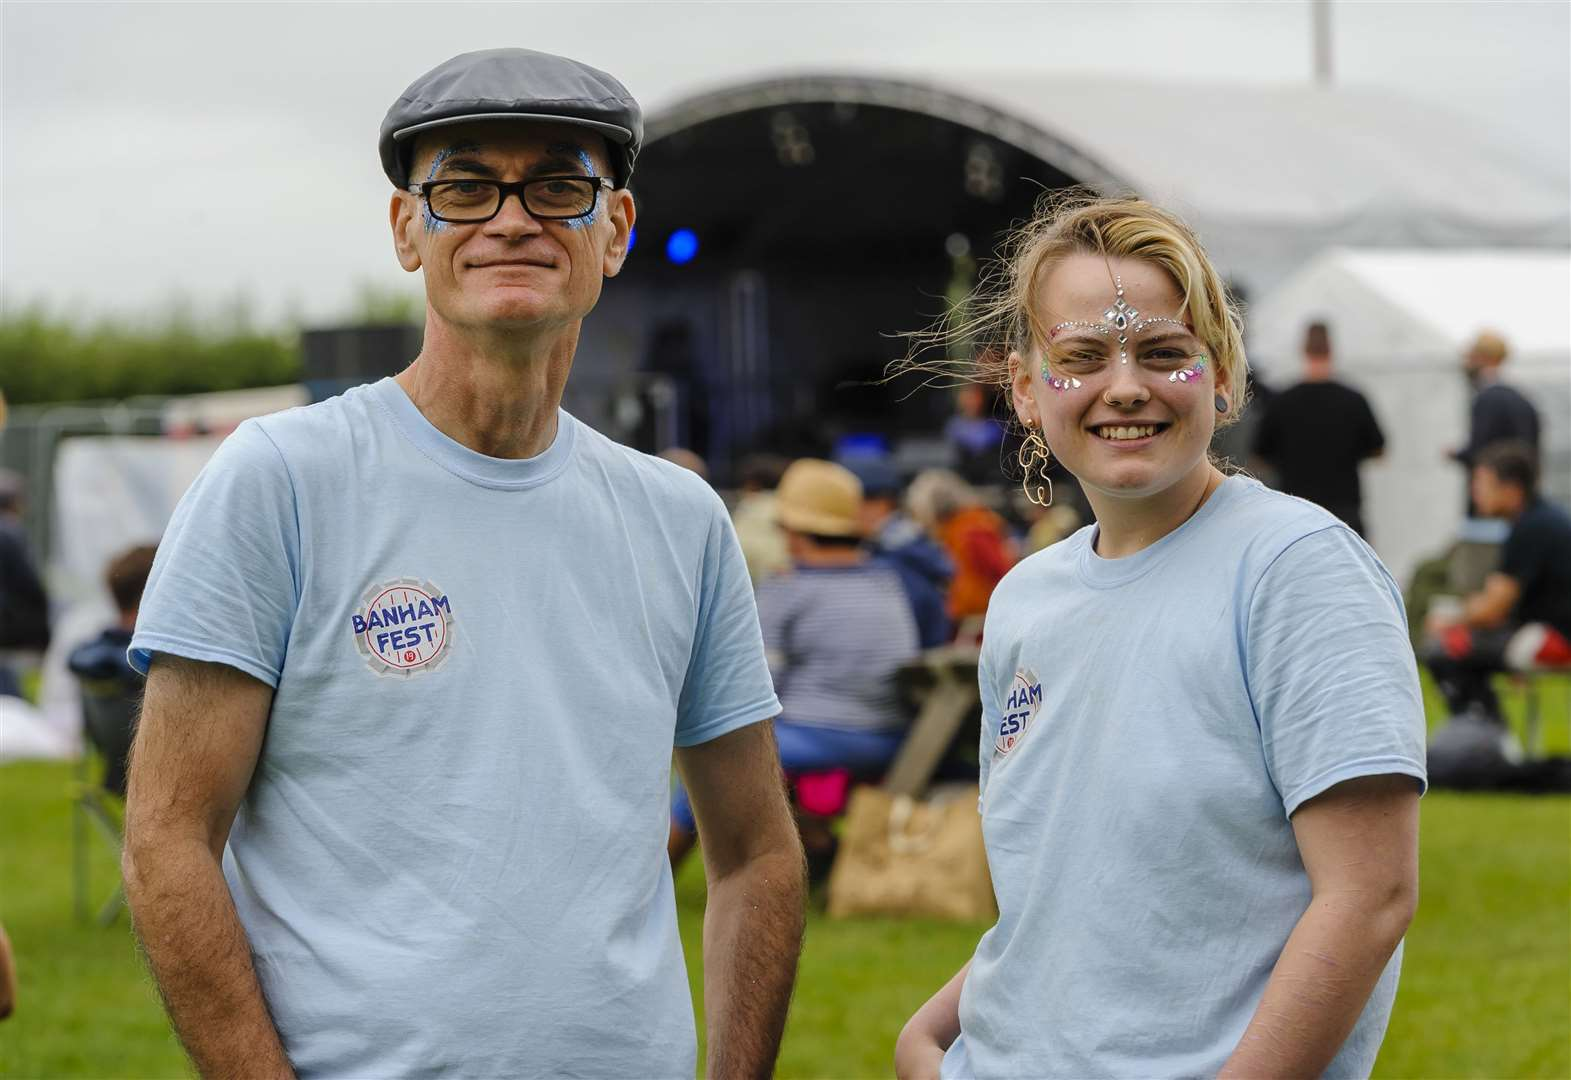 BanhamFest's success was a 'dream come true'